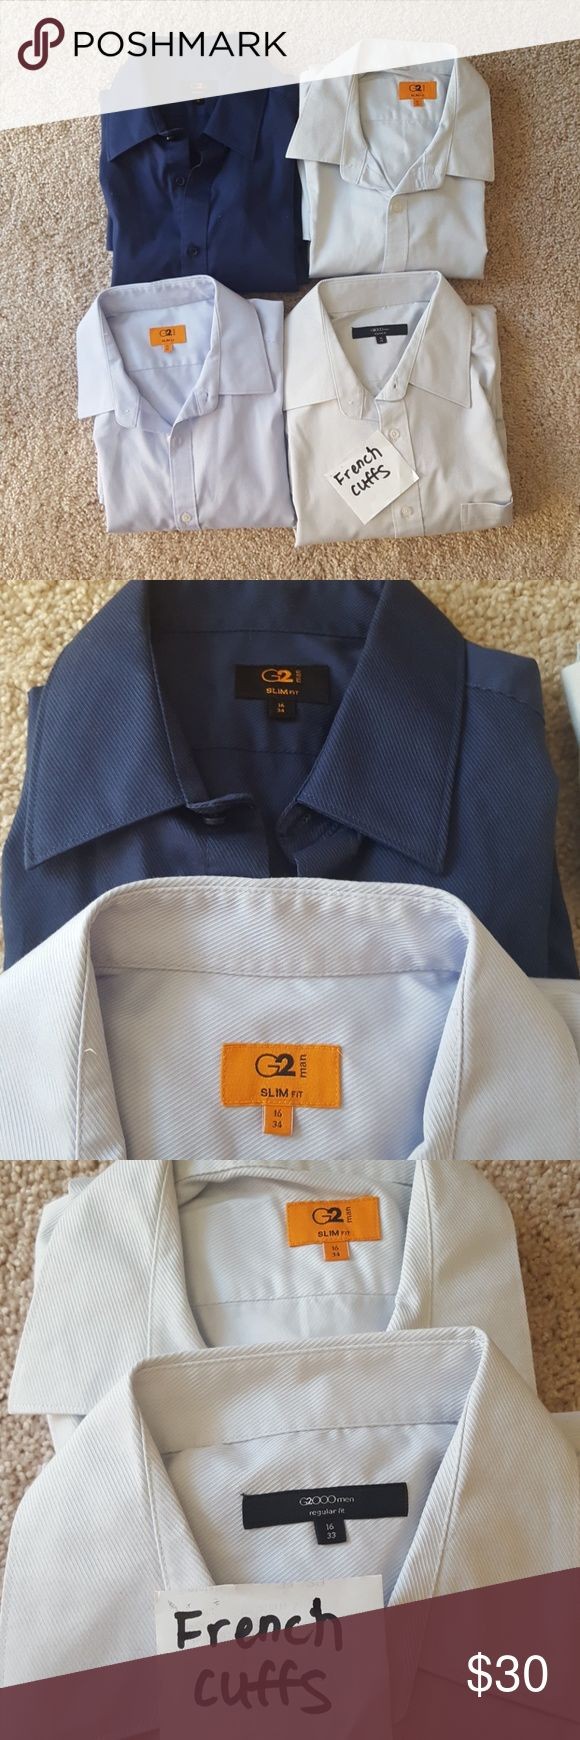 Bundle of 4 G2000/G2 Men's Dress Shirts Good condition! Navy blue shirt has never actually been worn, the others have. All are diagonal stripe textured, size 16 33 and 34. G2000 Shirts Dress Shirts